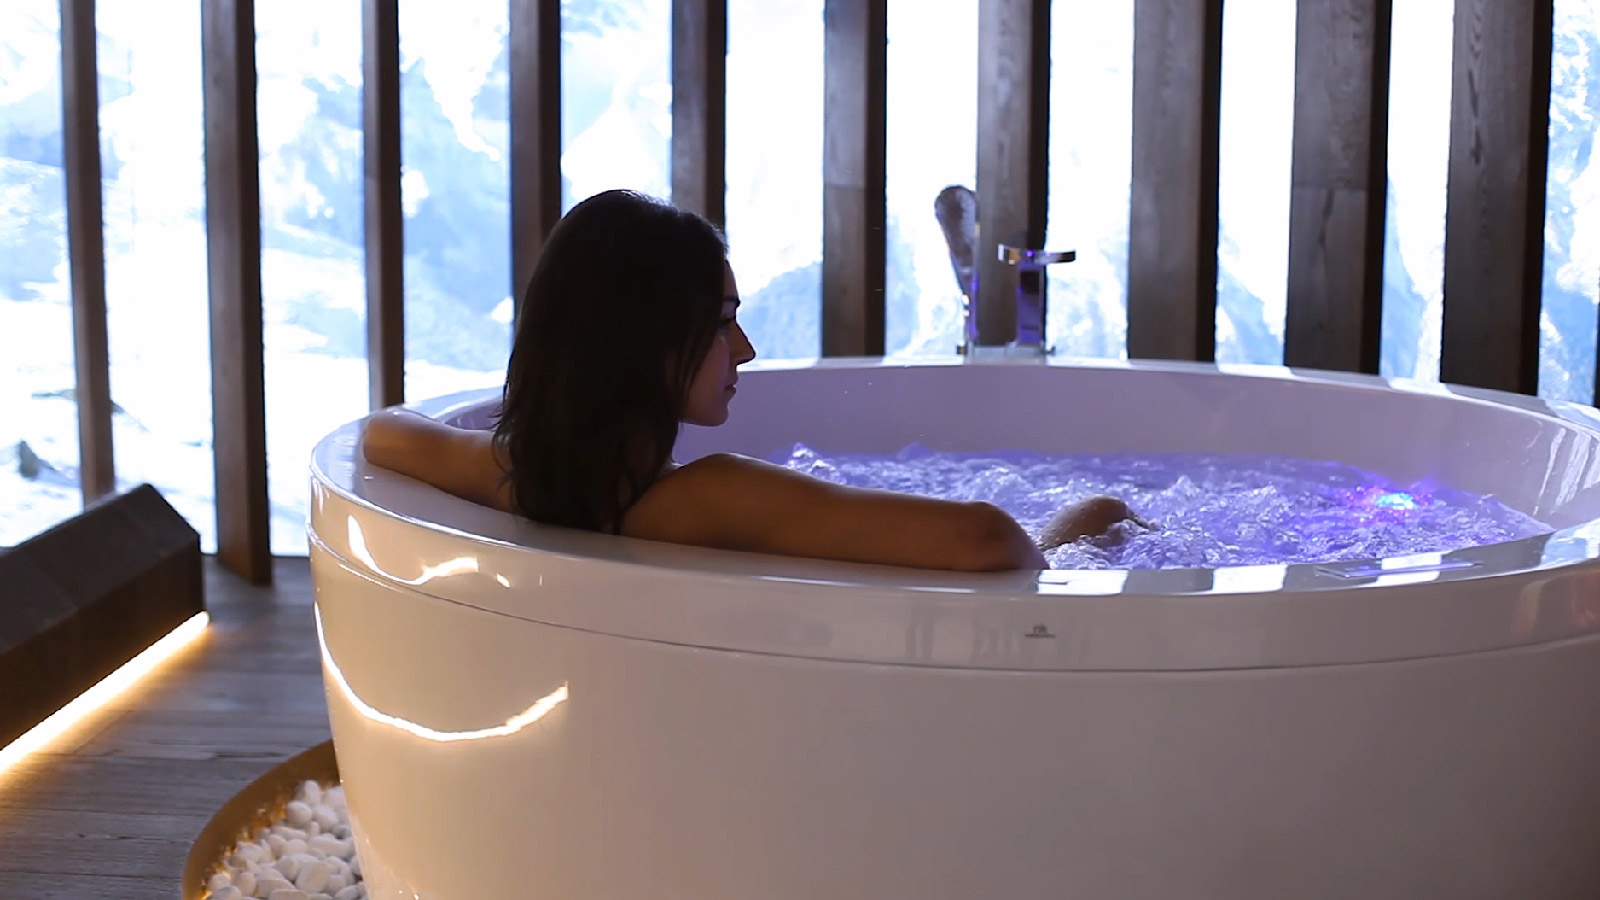 Noken presents its new outdoor bathtubs and its cutting-edge wellness sensations equipment for indoor bathtubs